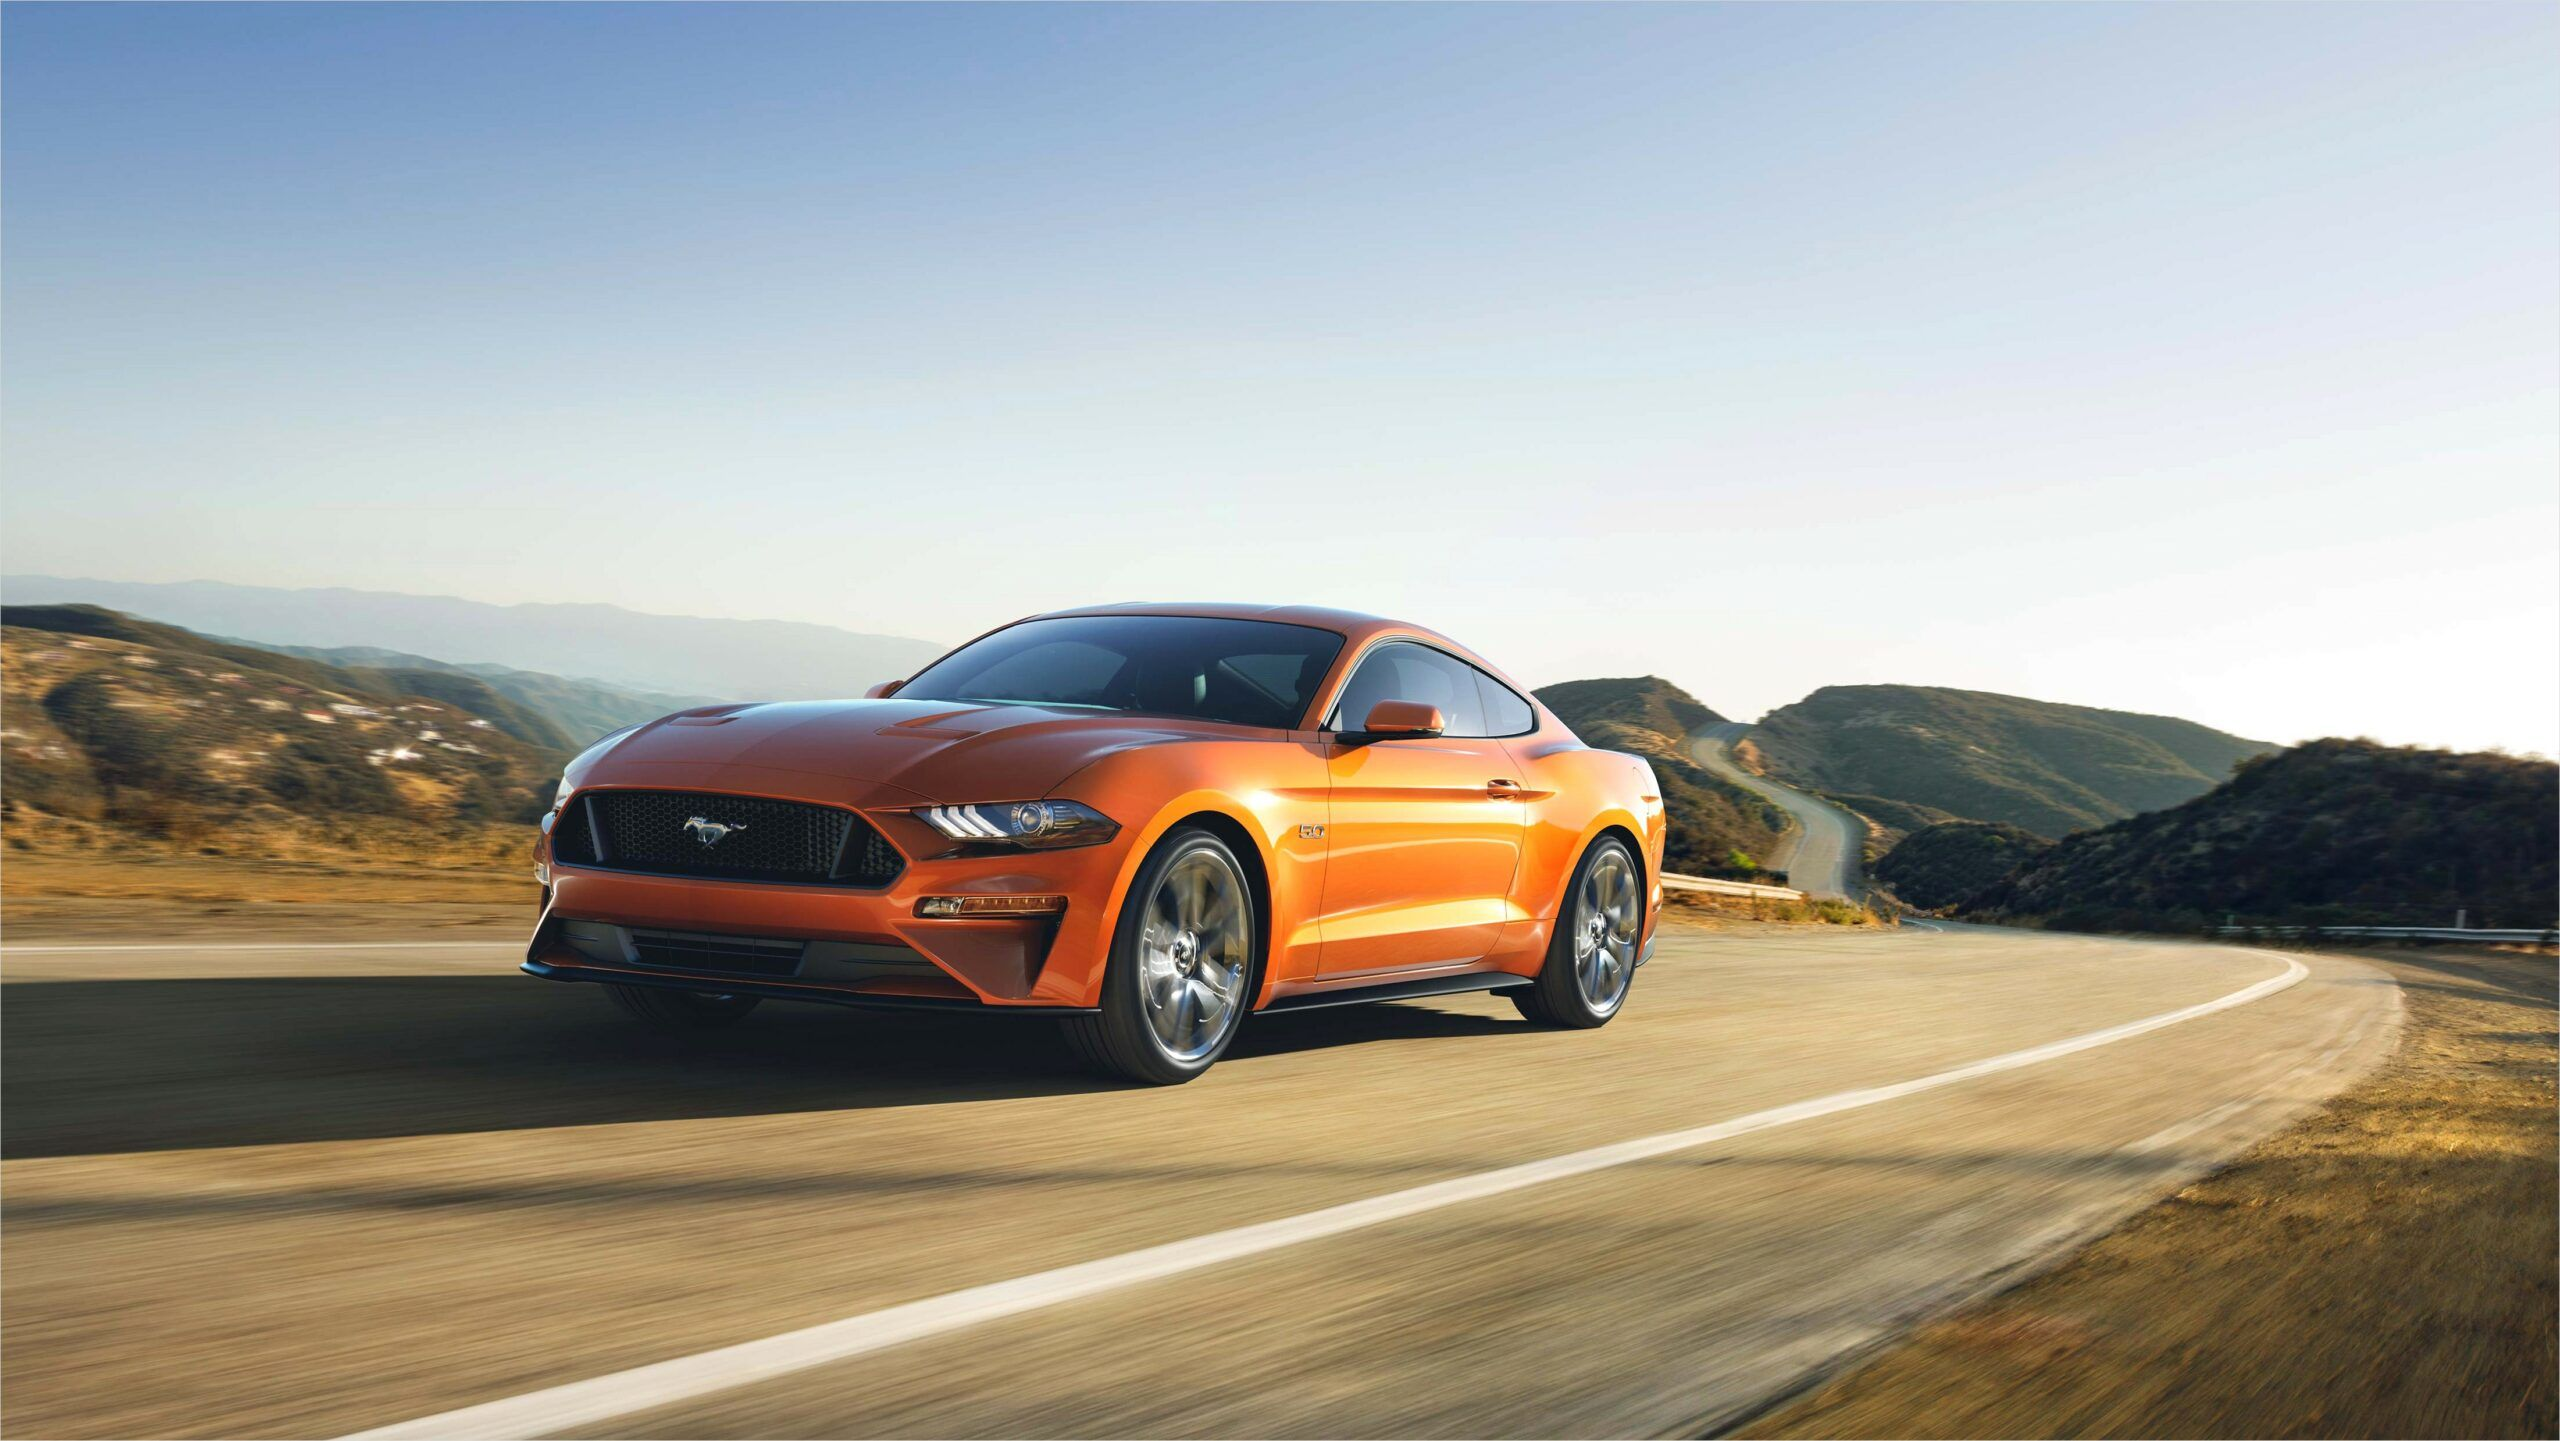 4k Ford Mustang Wallpaper 2020 Ford Mustang Gt Ford Mustang